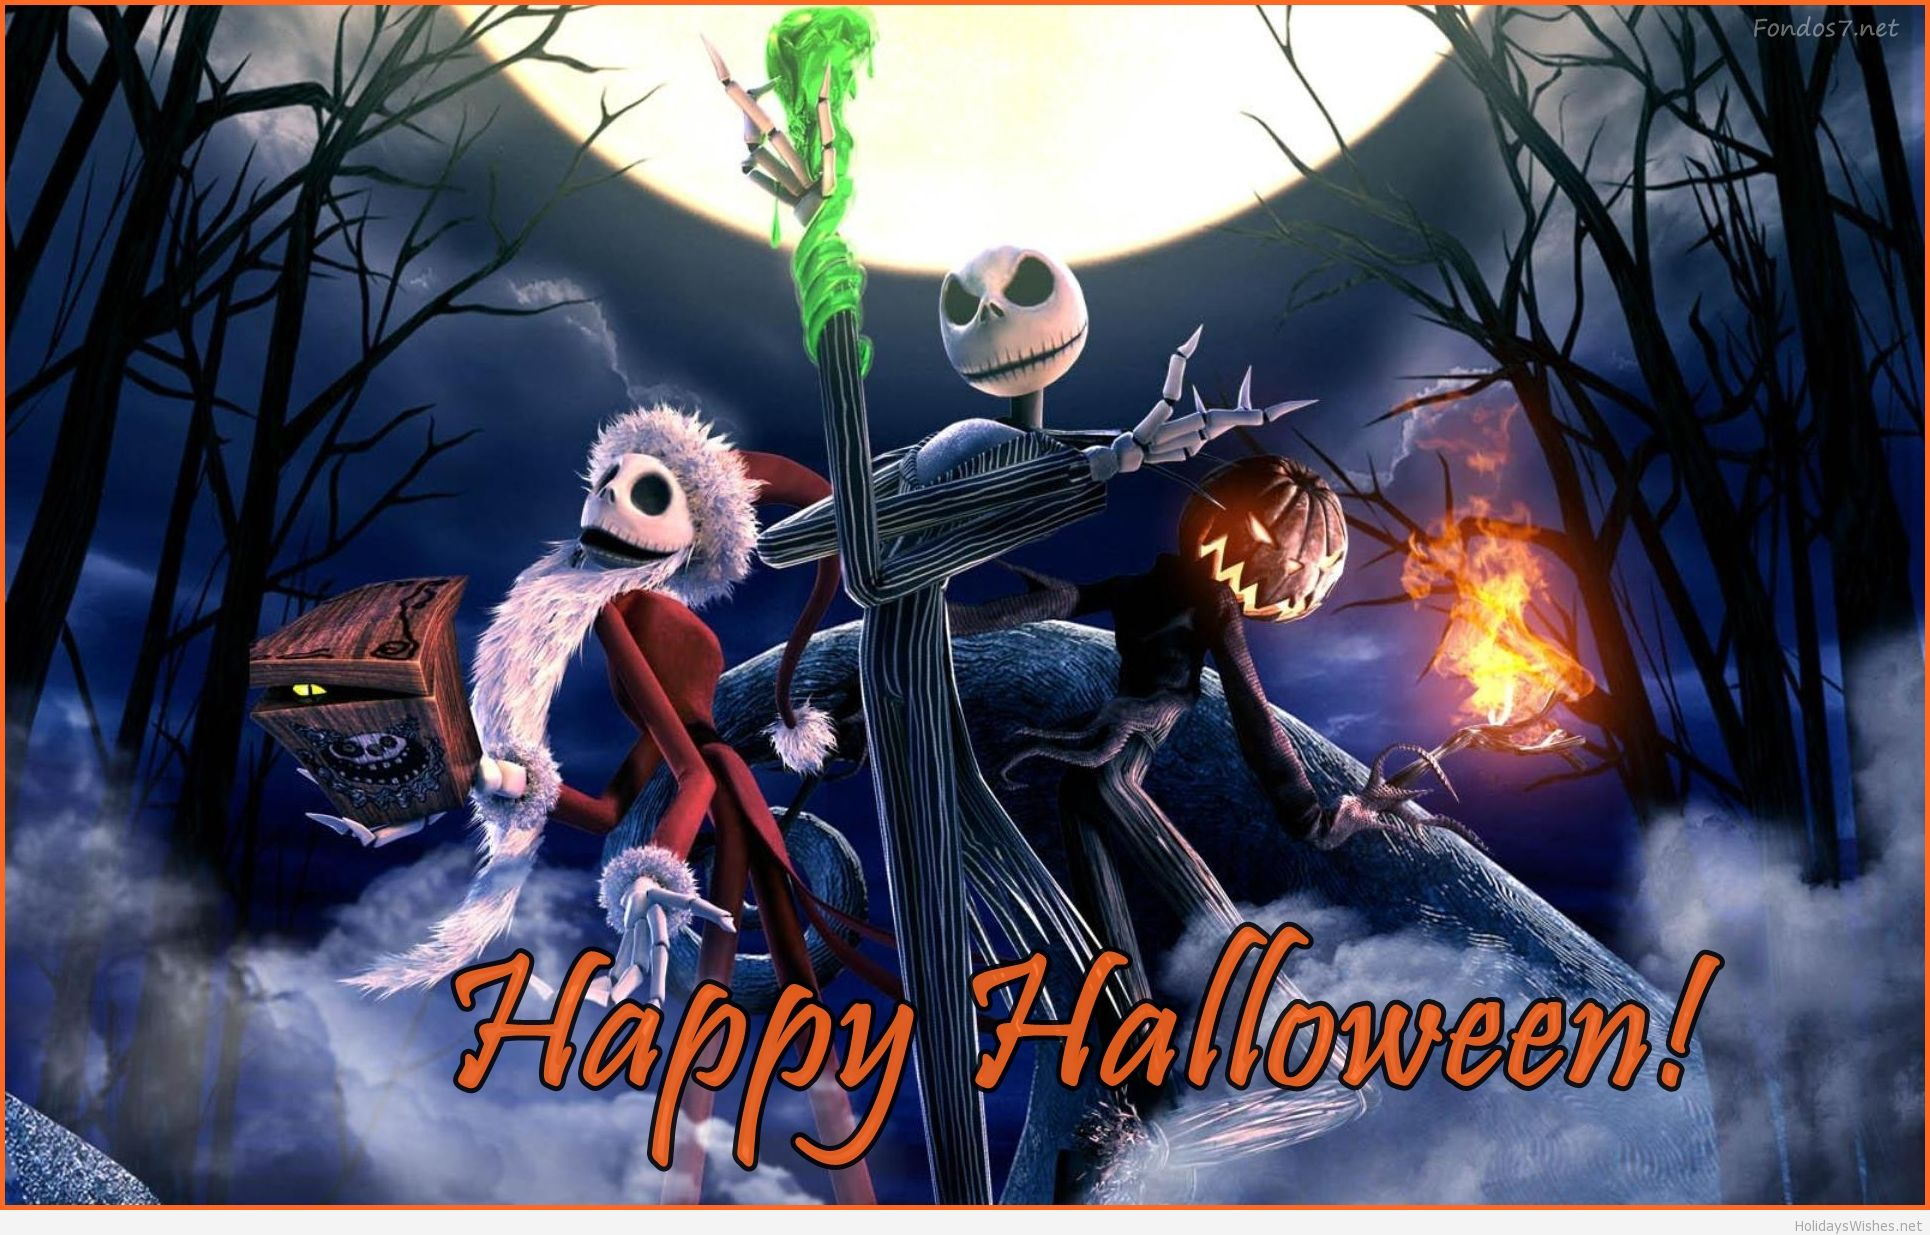 Happy-Halloween-Nightmare-Before-Christmas-Image